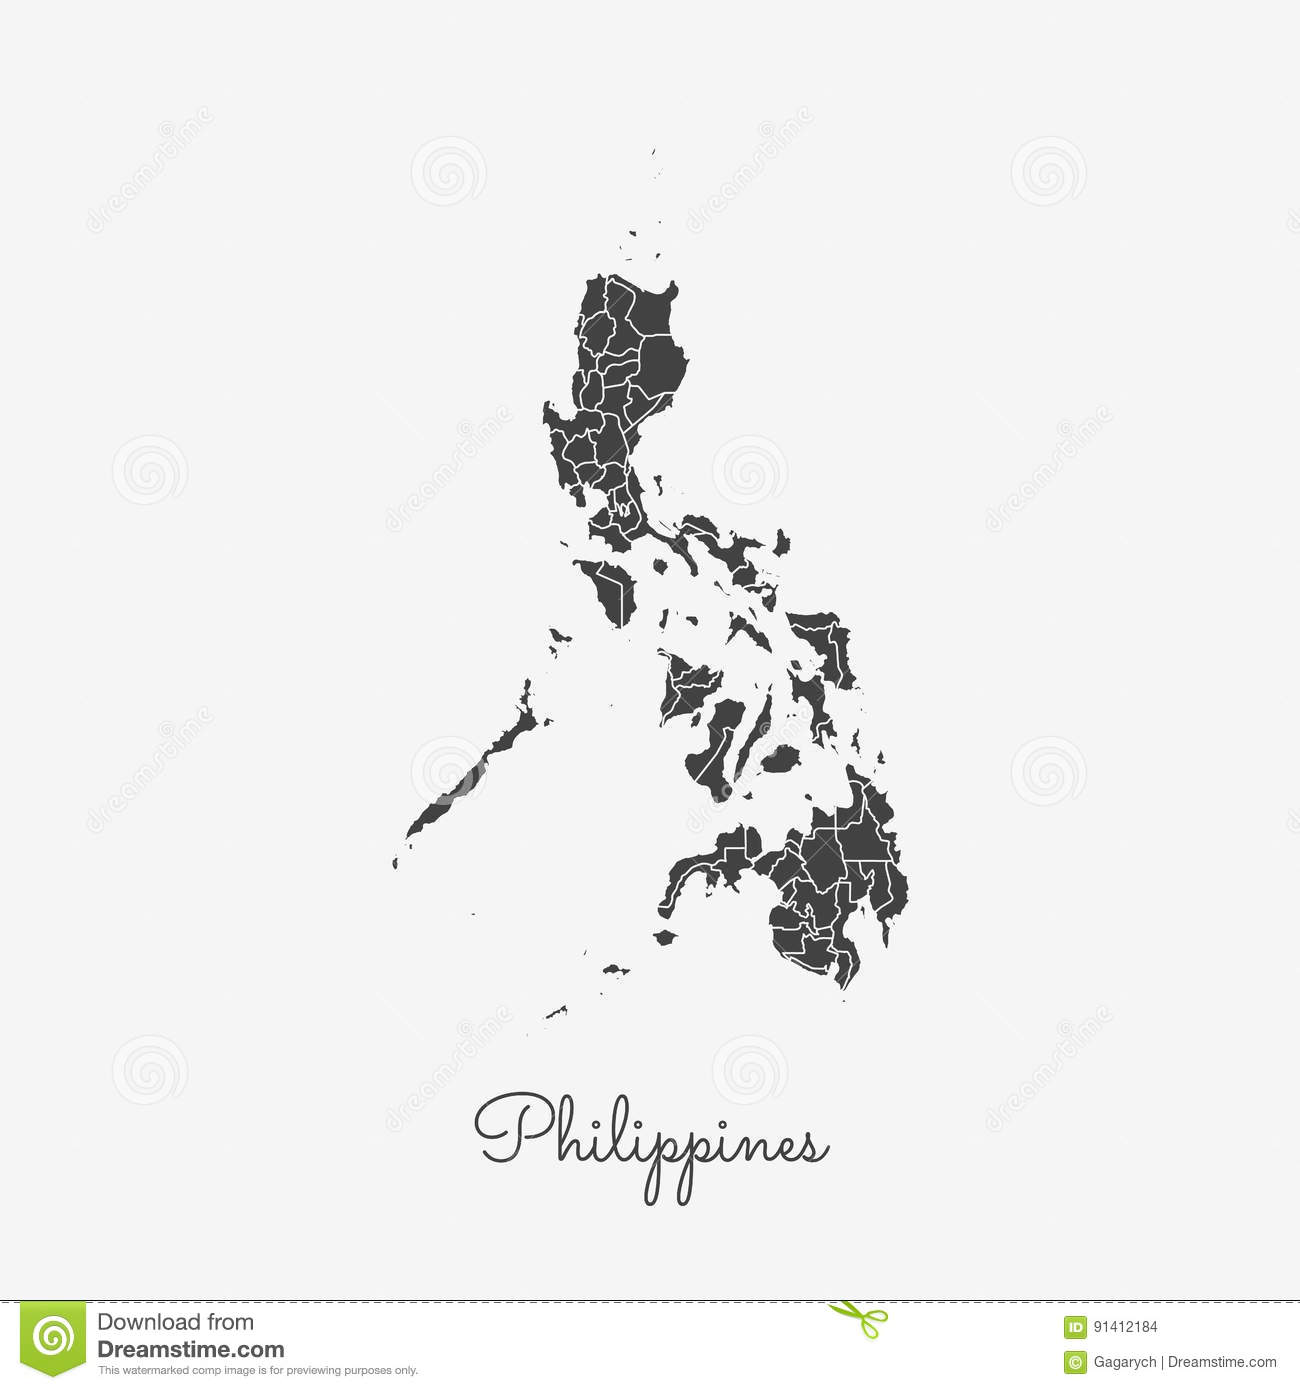 Philippines Region Map Grey Outline On White Stock Vector